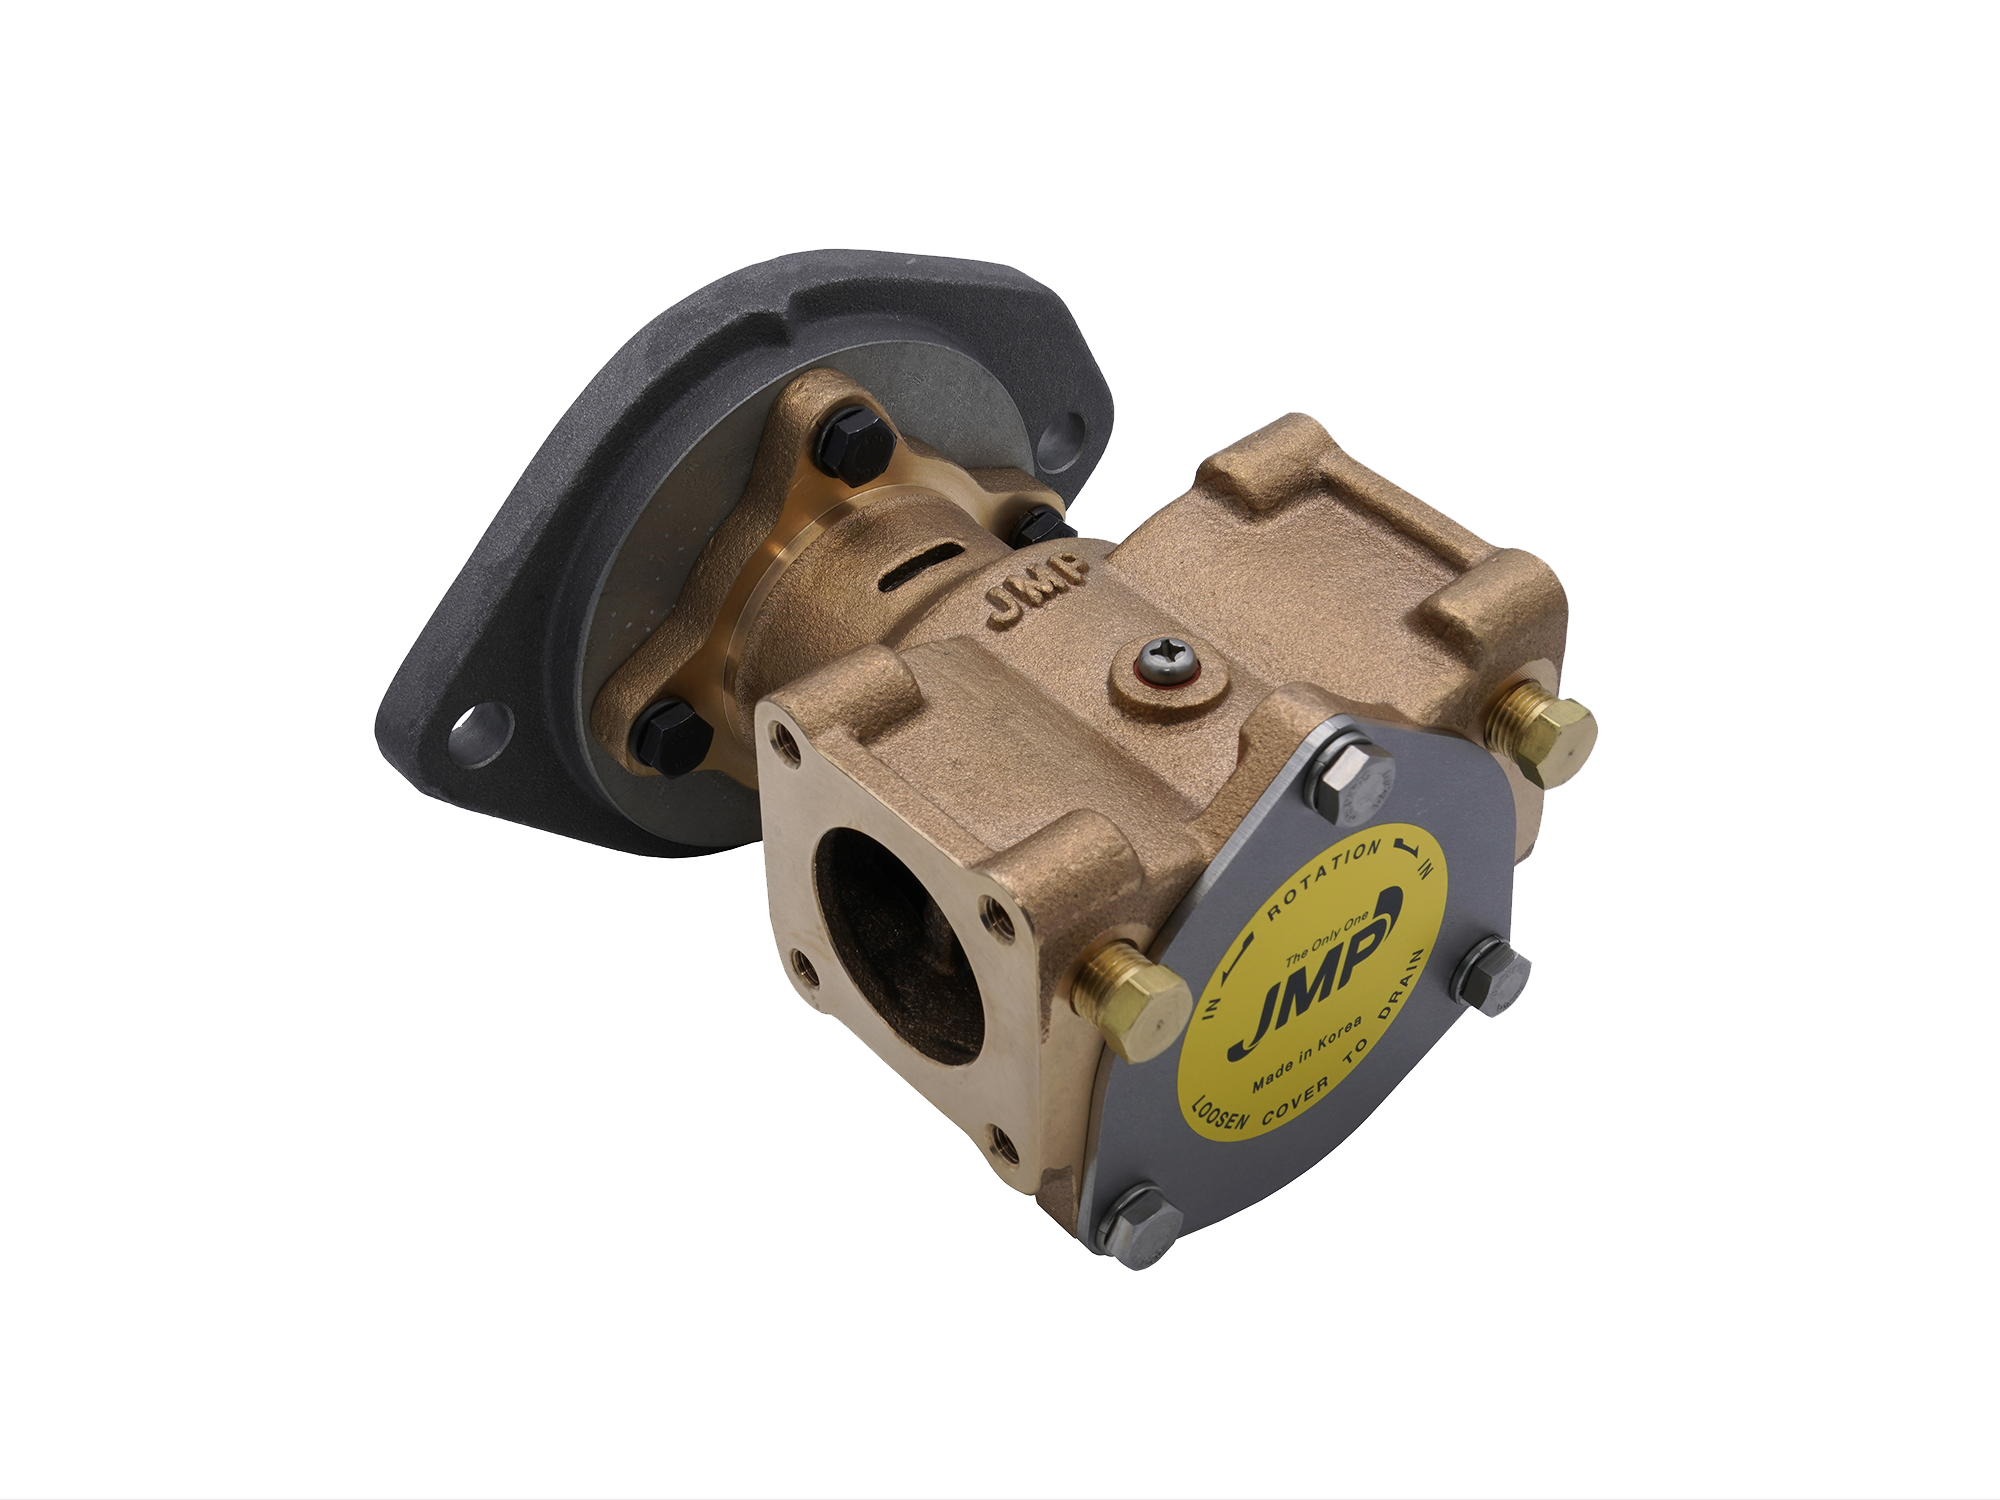 jmp-sea-water-pump-s76-series